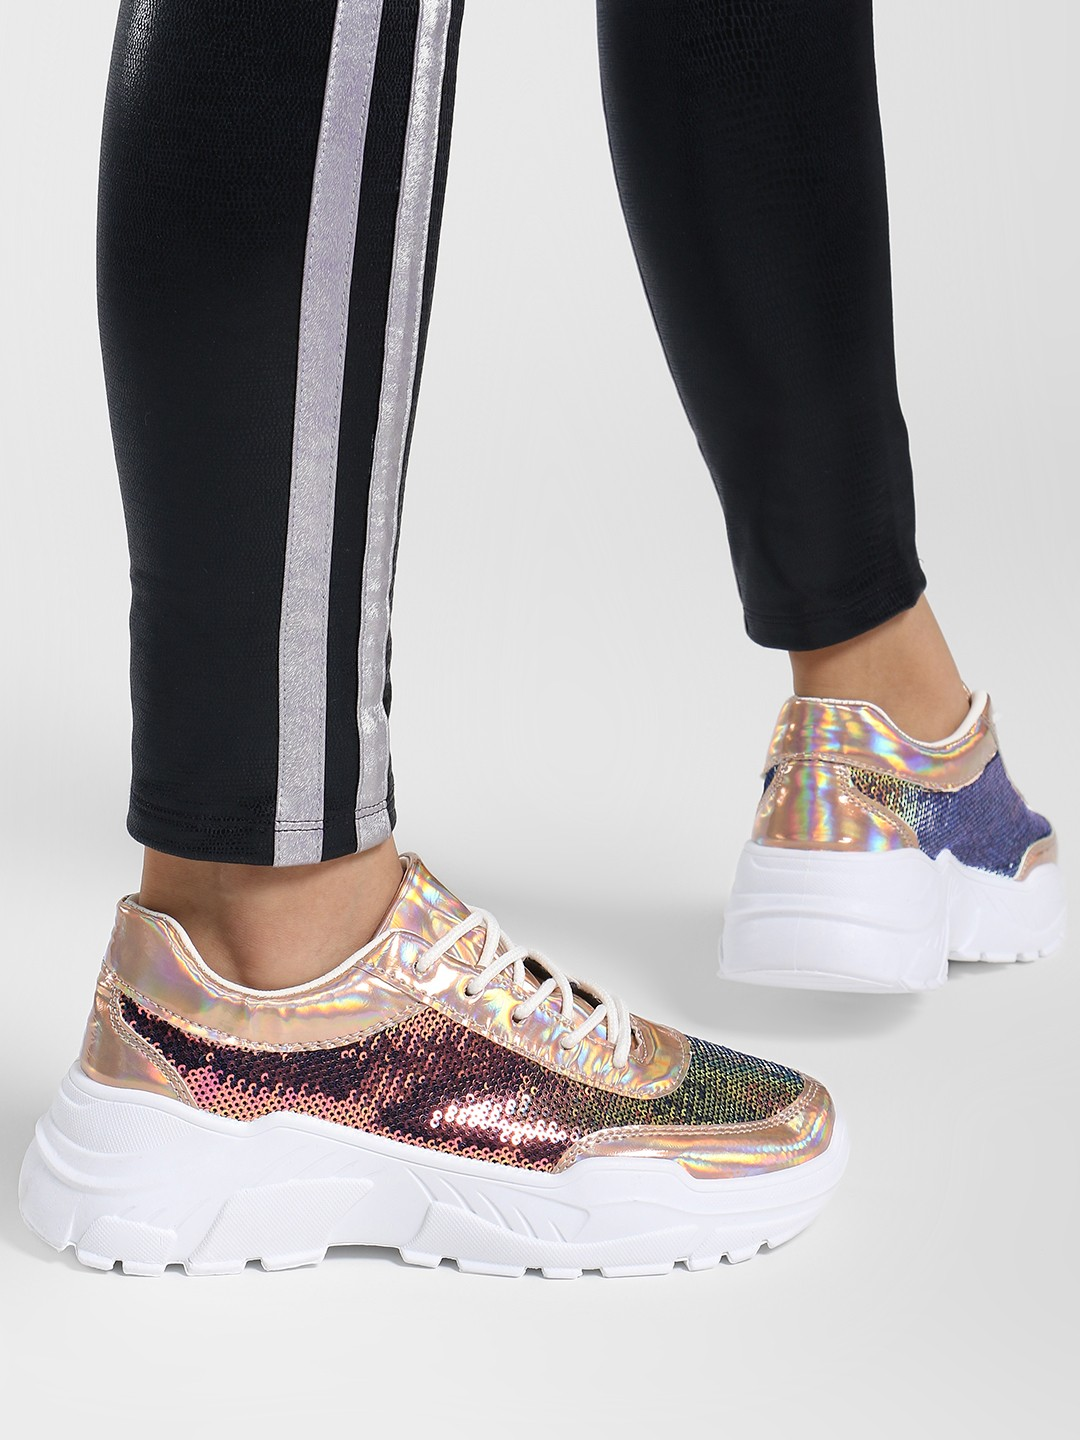 Ideal Shoes Rose Gold Metallic Sequin Chunky Sole Trainers 1